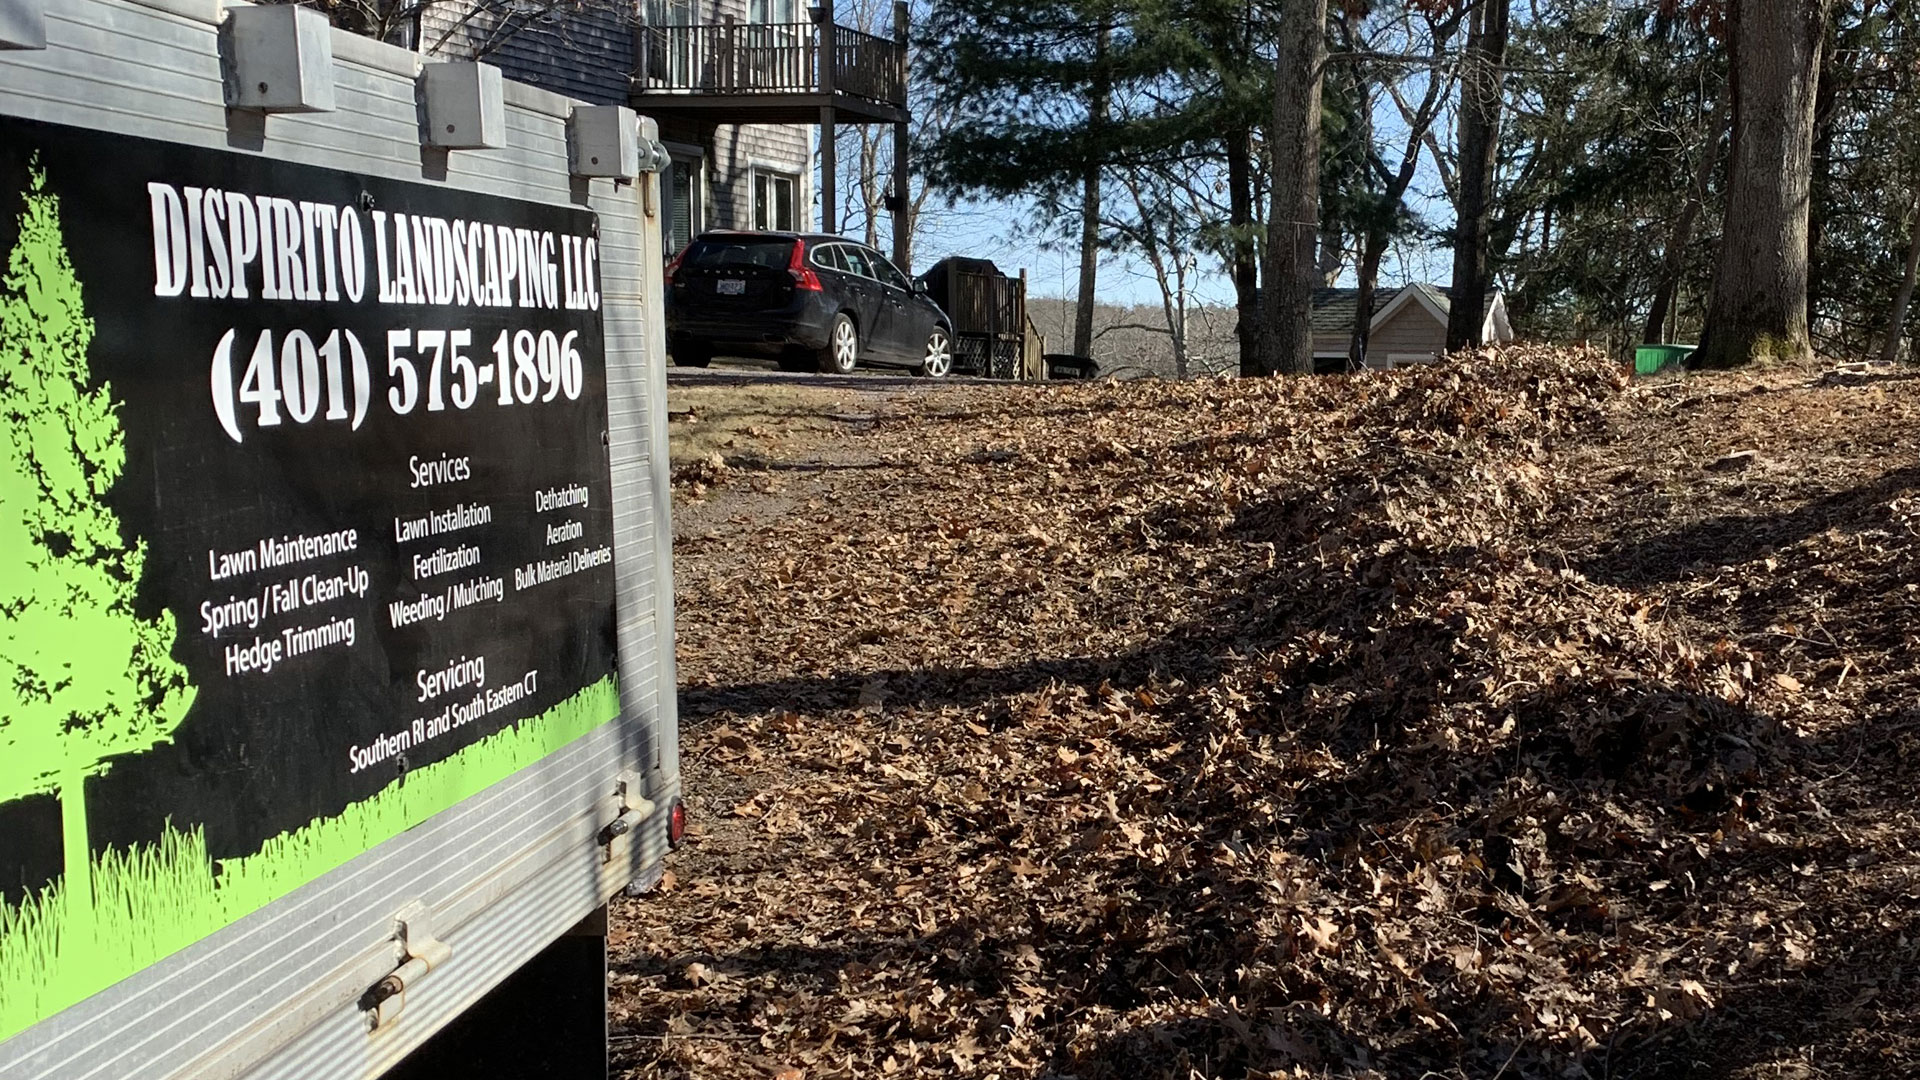 DiSpirito Landscaping LLC work trailer at a Westerly, RI home property.